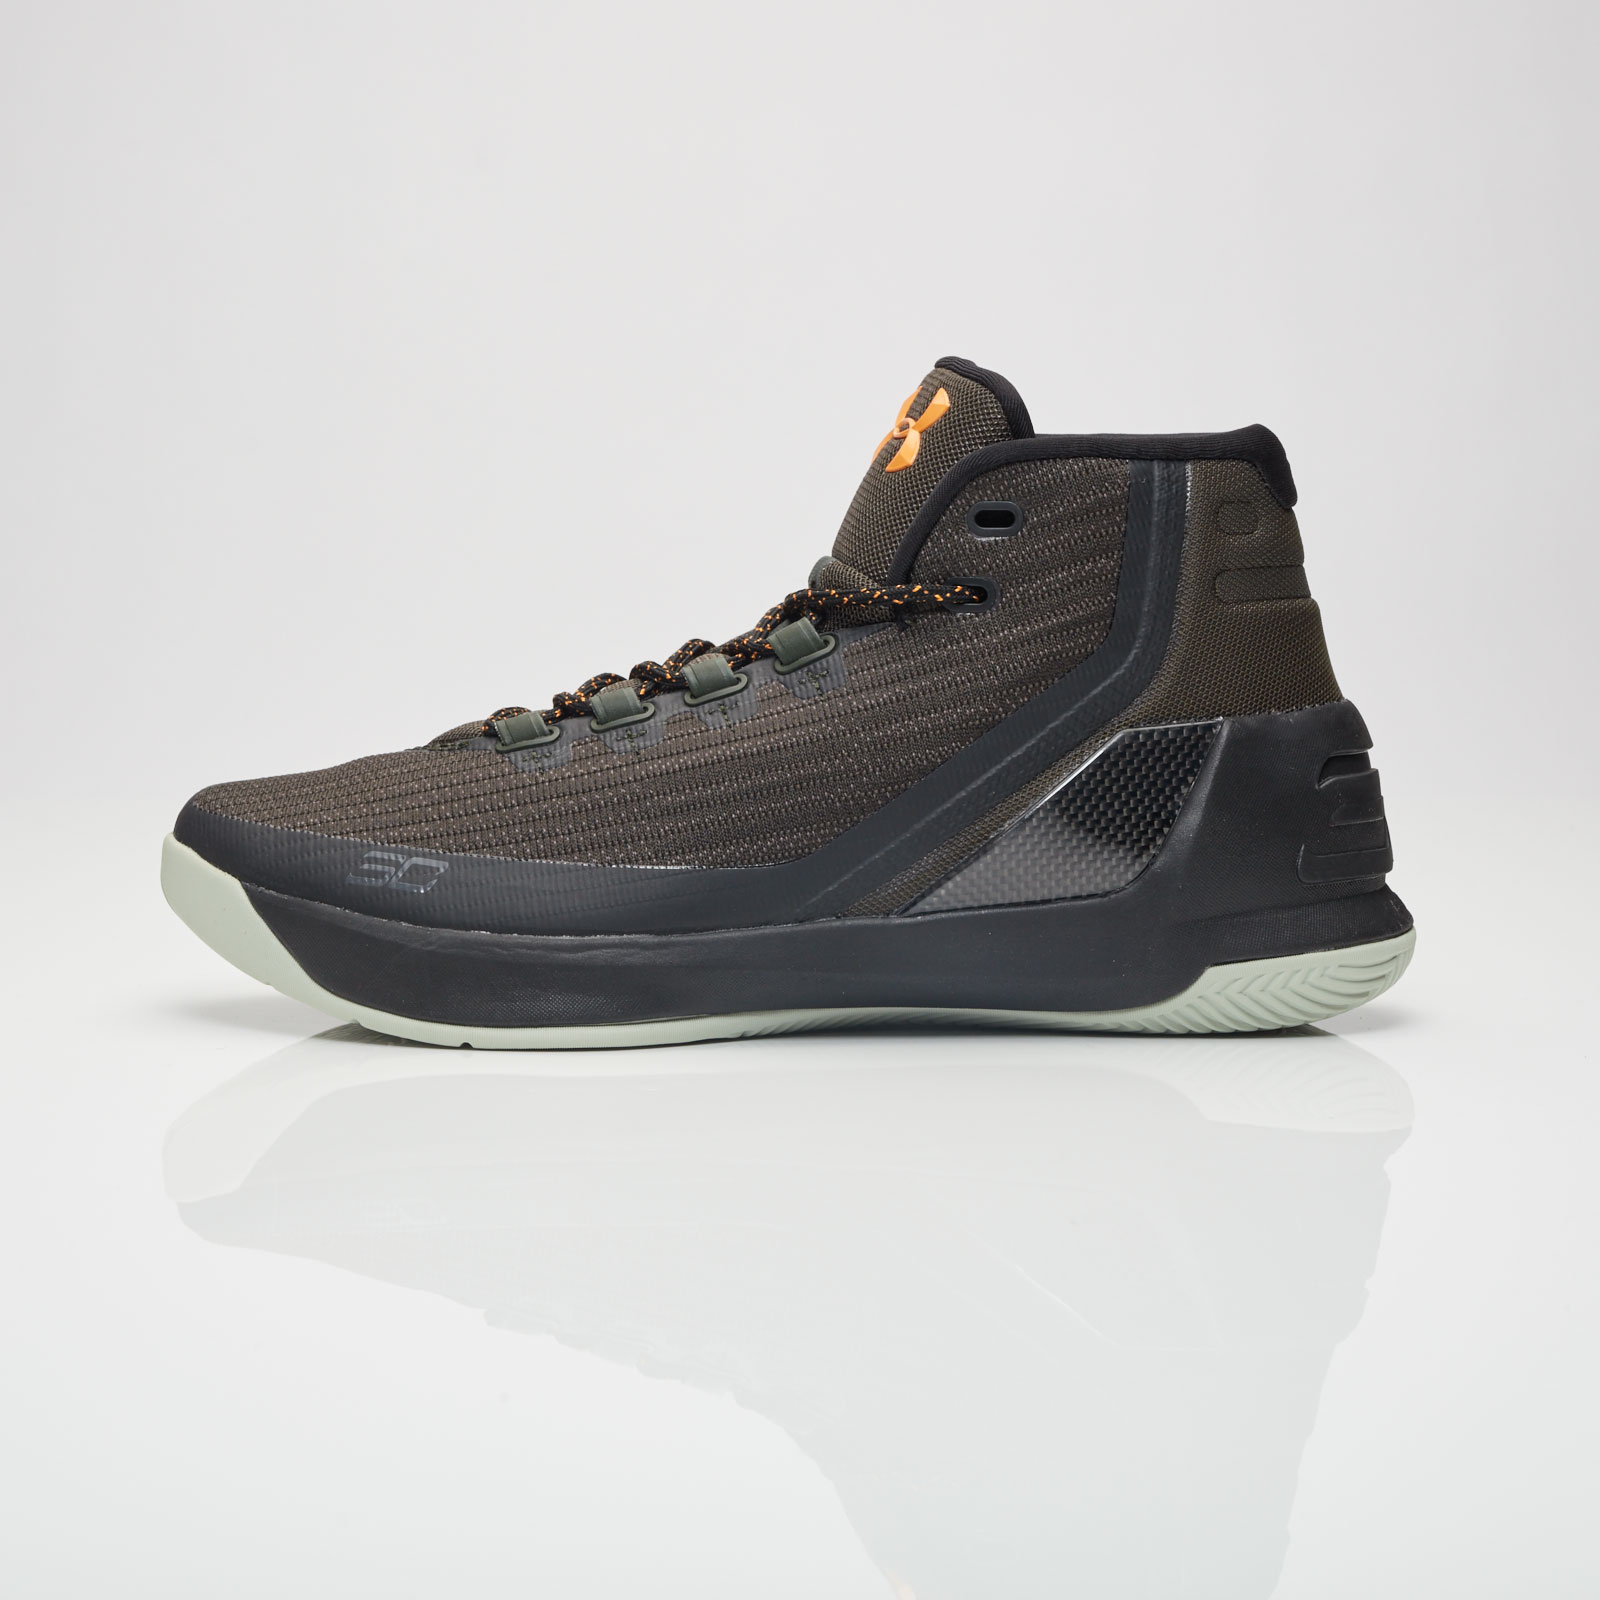 3c03717df975 Under Armour Curry 3 - 1269279-357 - Sneakersnstuff